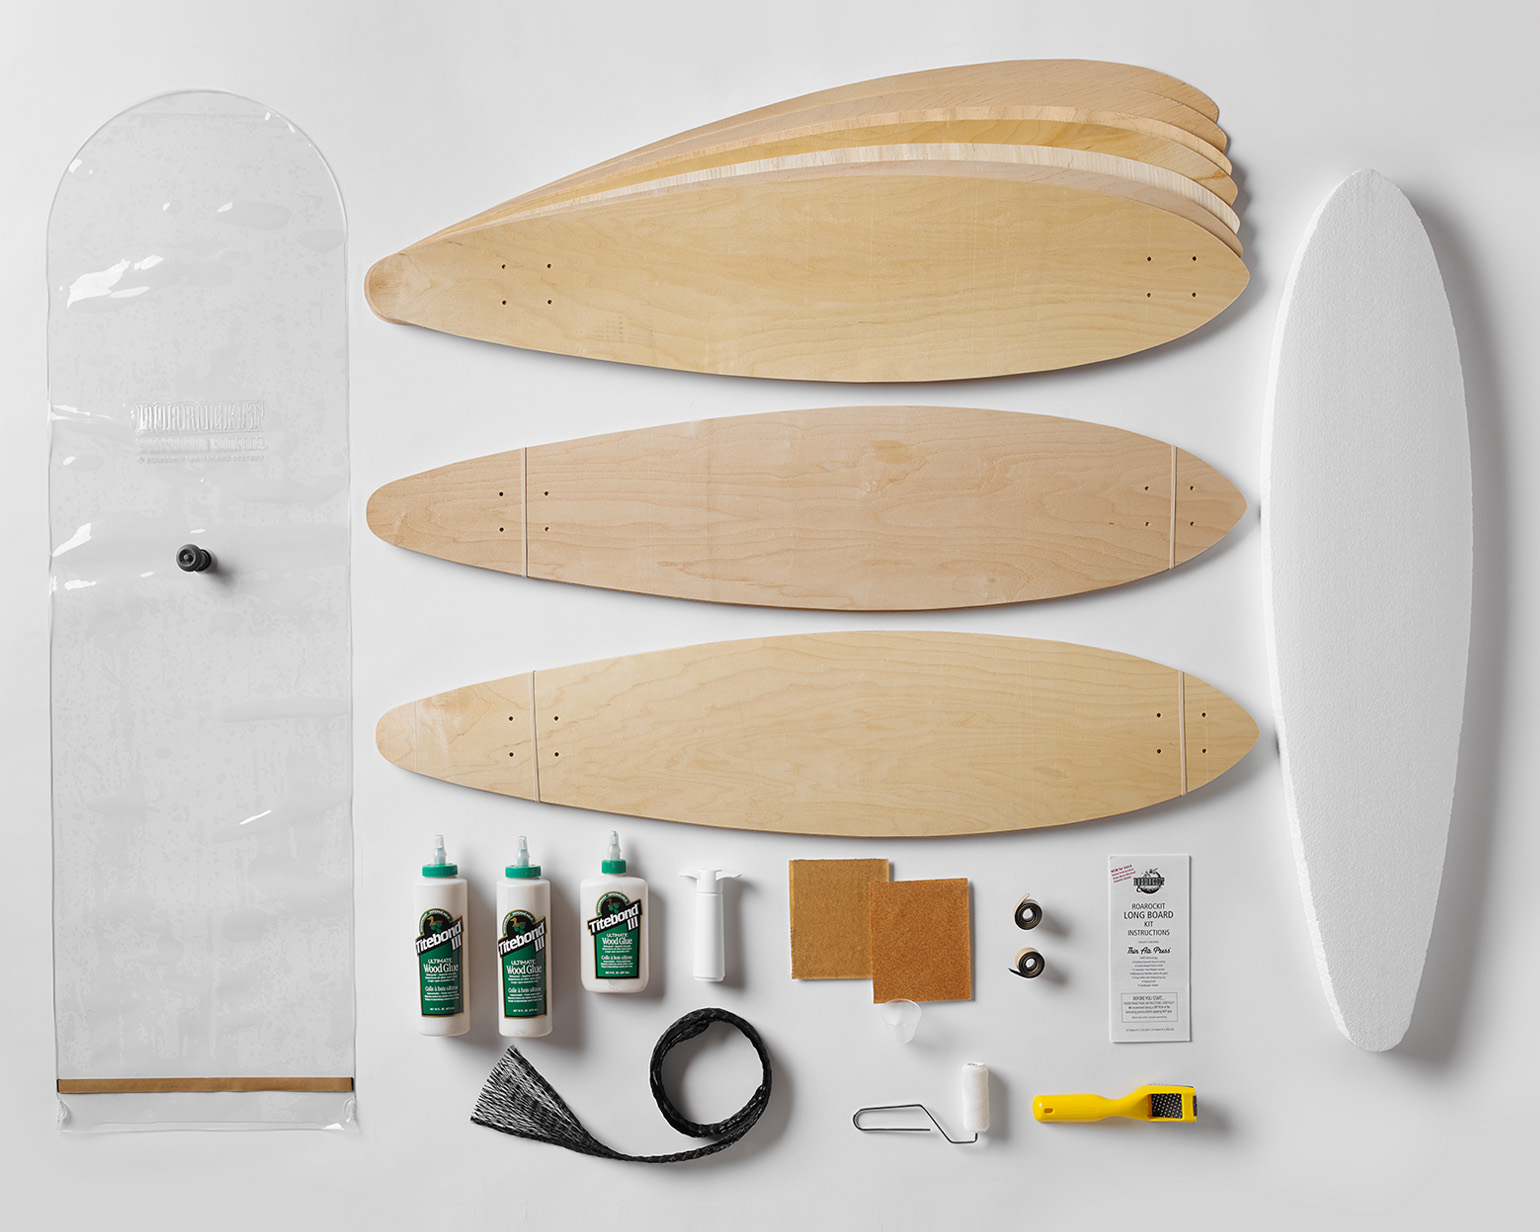 ptk03-pintail-triple-kit-1540.jpg